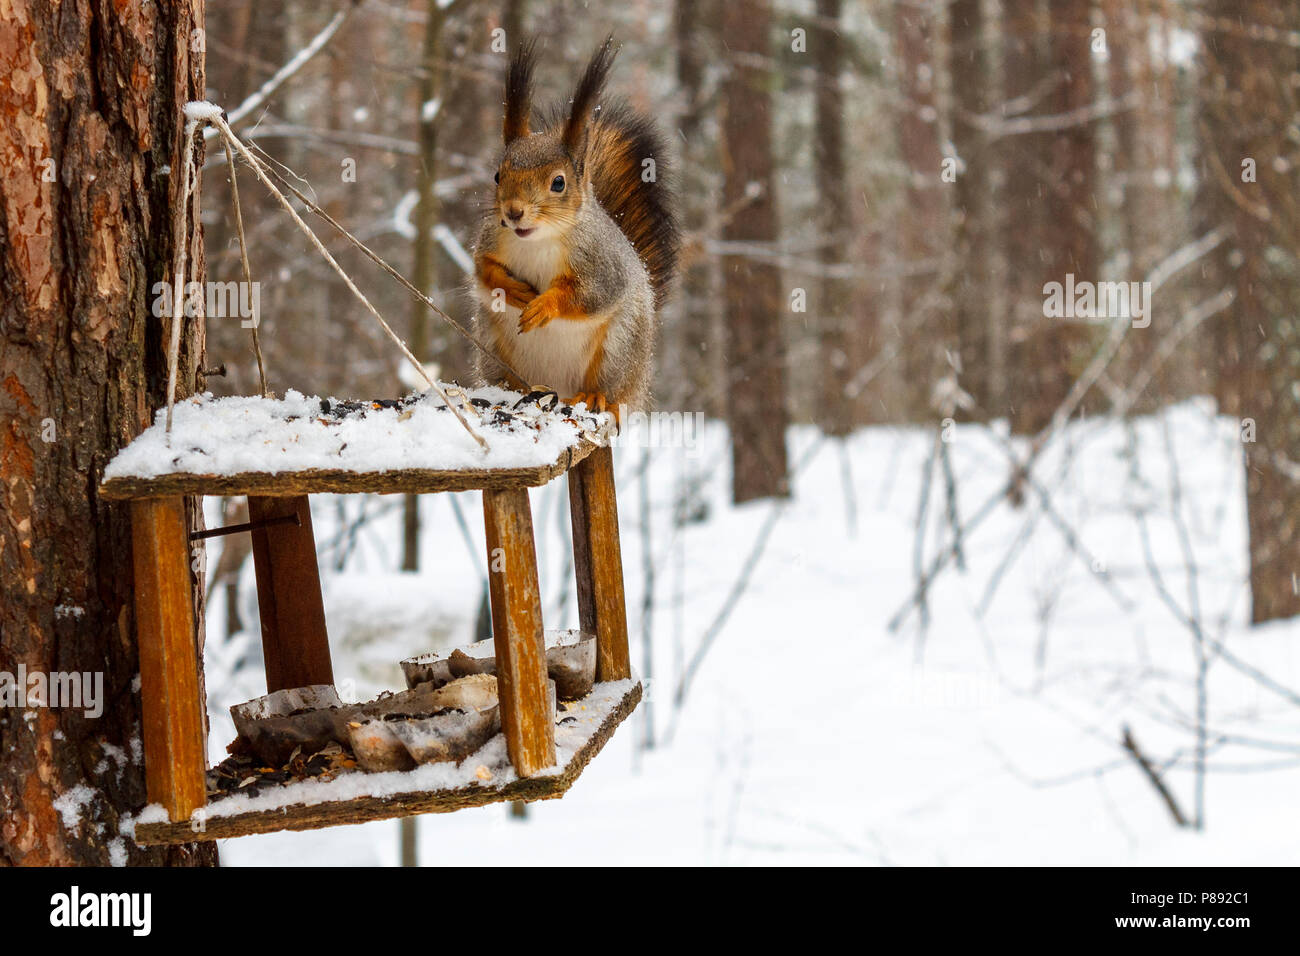 Red squirrel in the winter forest sits on the feeder and there are sunflower seeds. - Stock Image